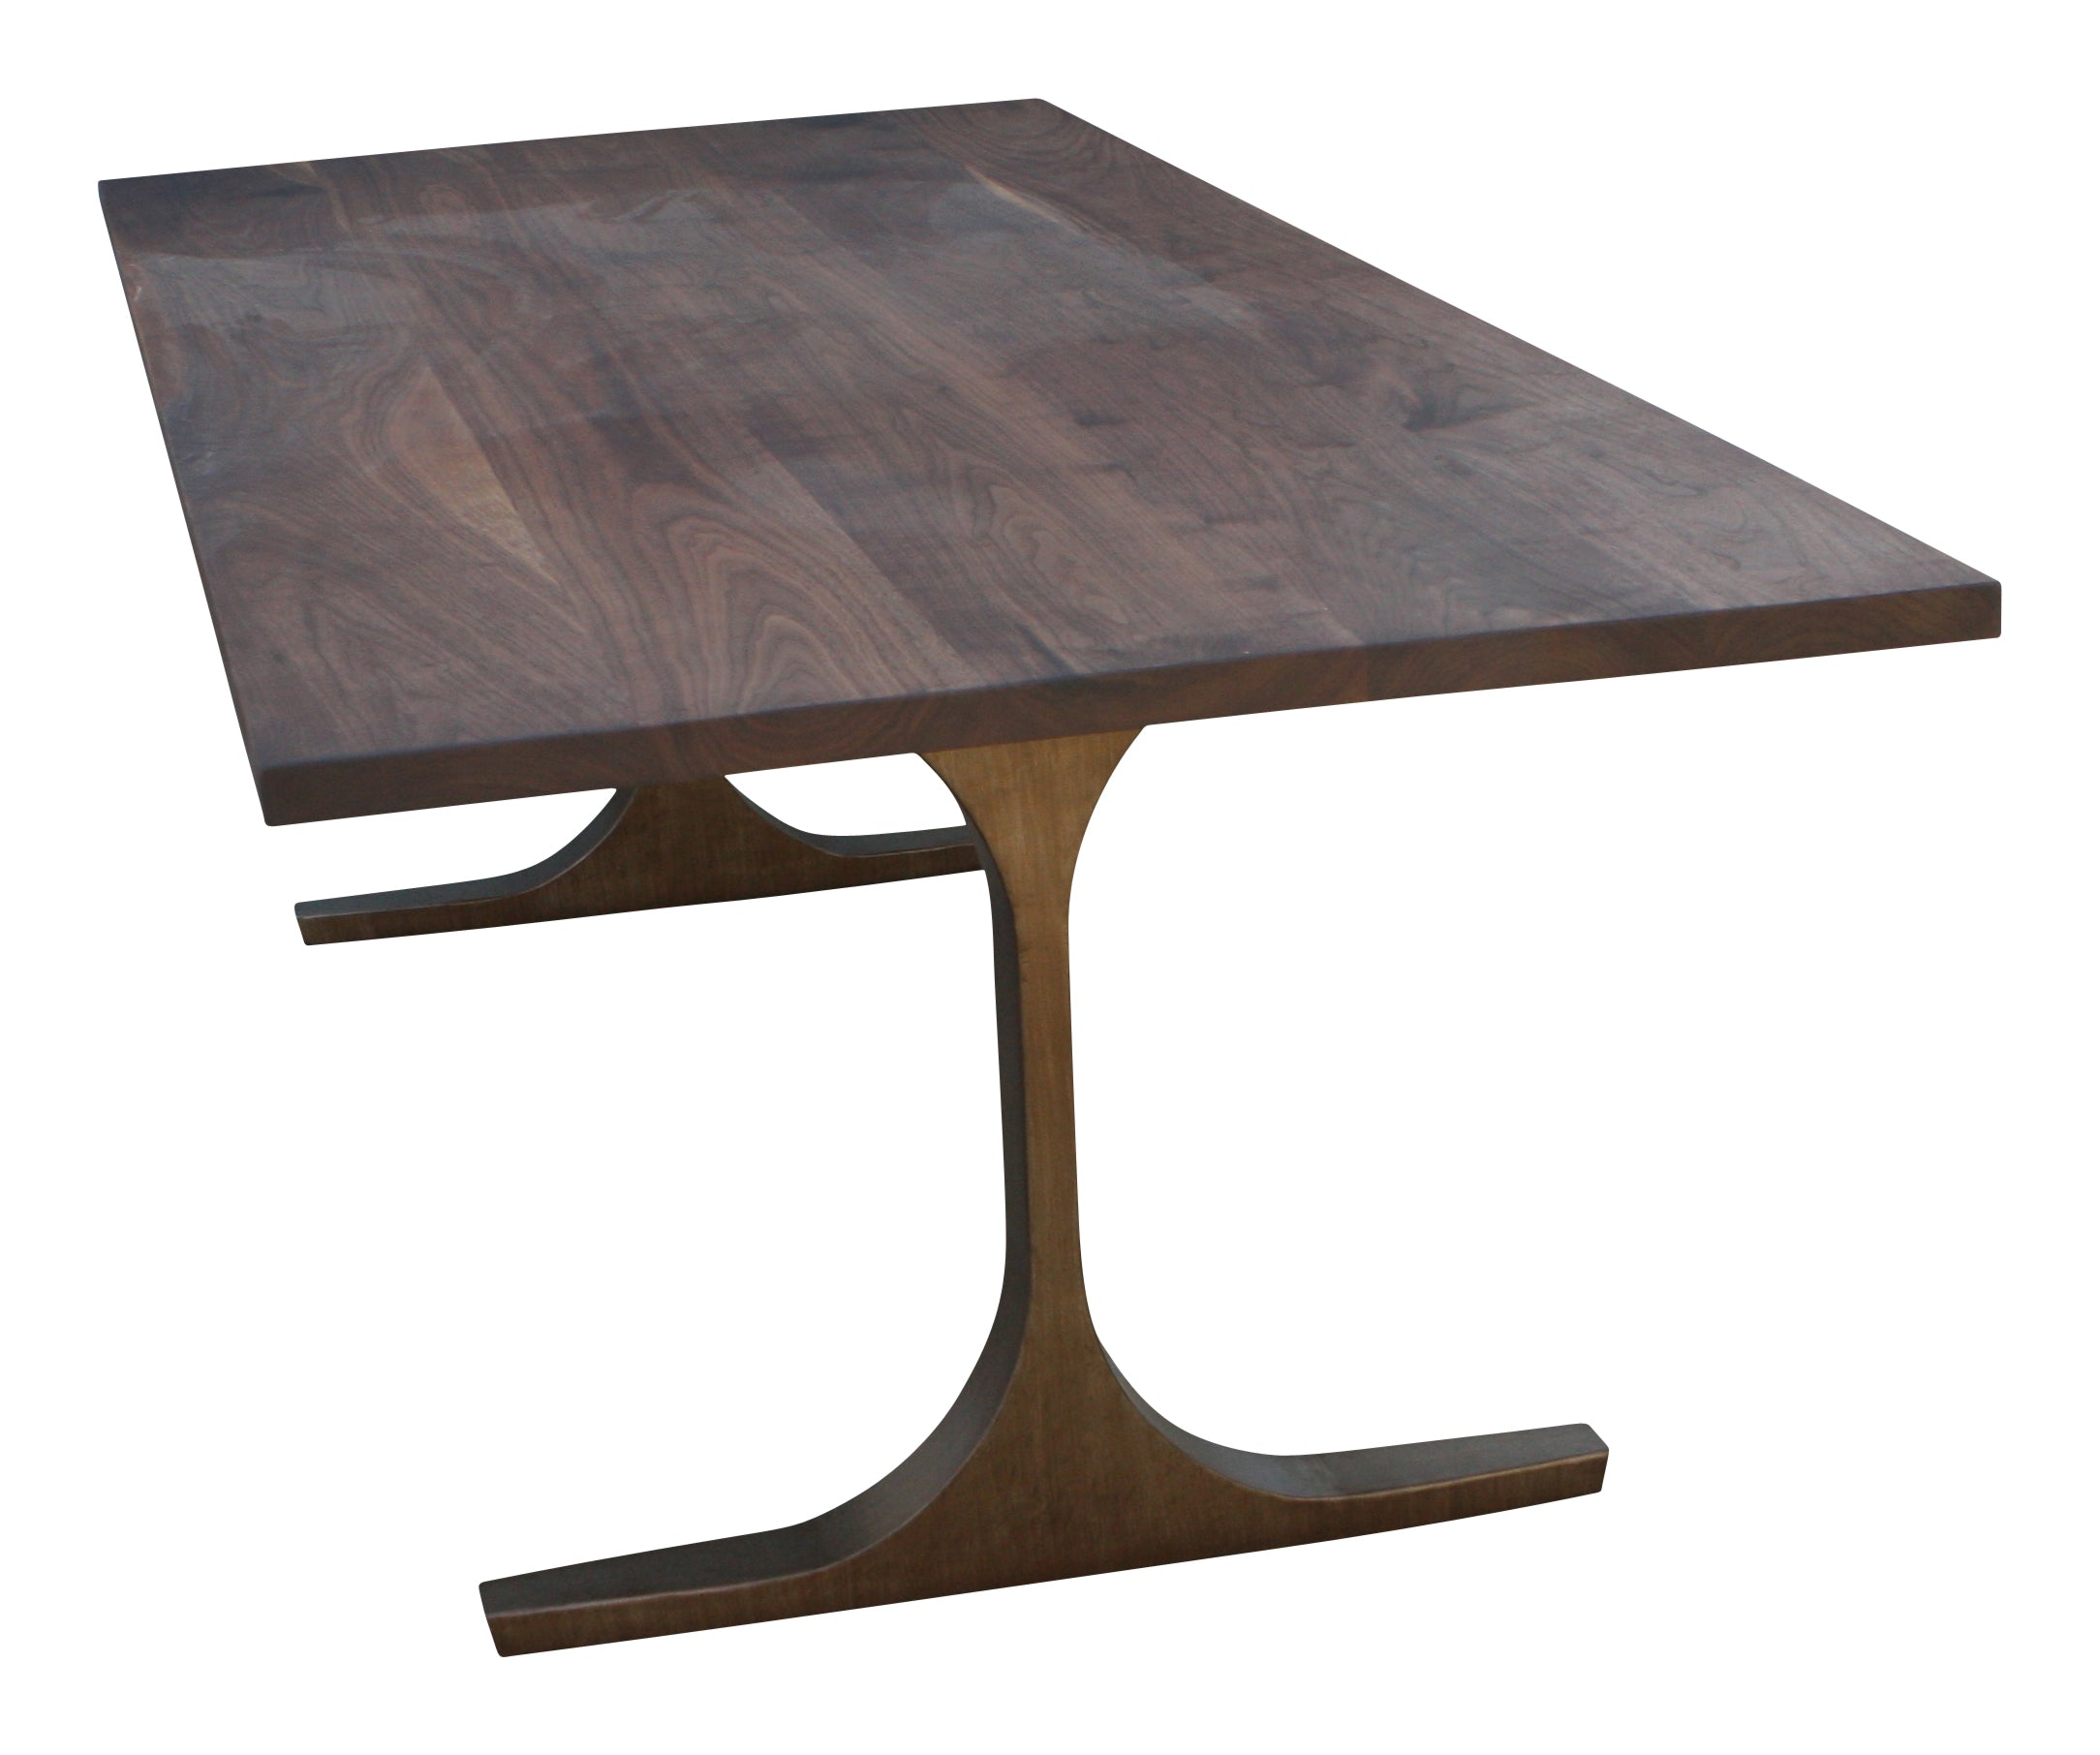 Bergen Oval Coffee Table: Bergen Dining Table With A Solid Walnut Top